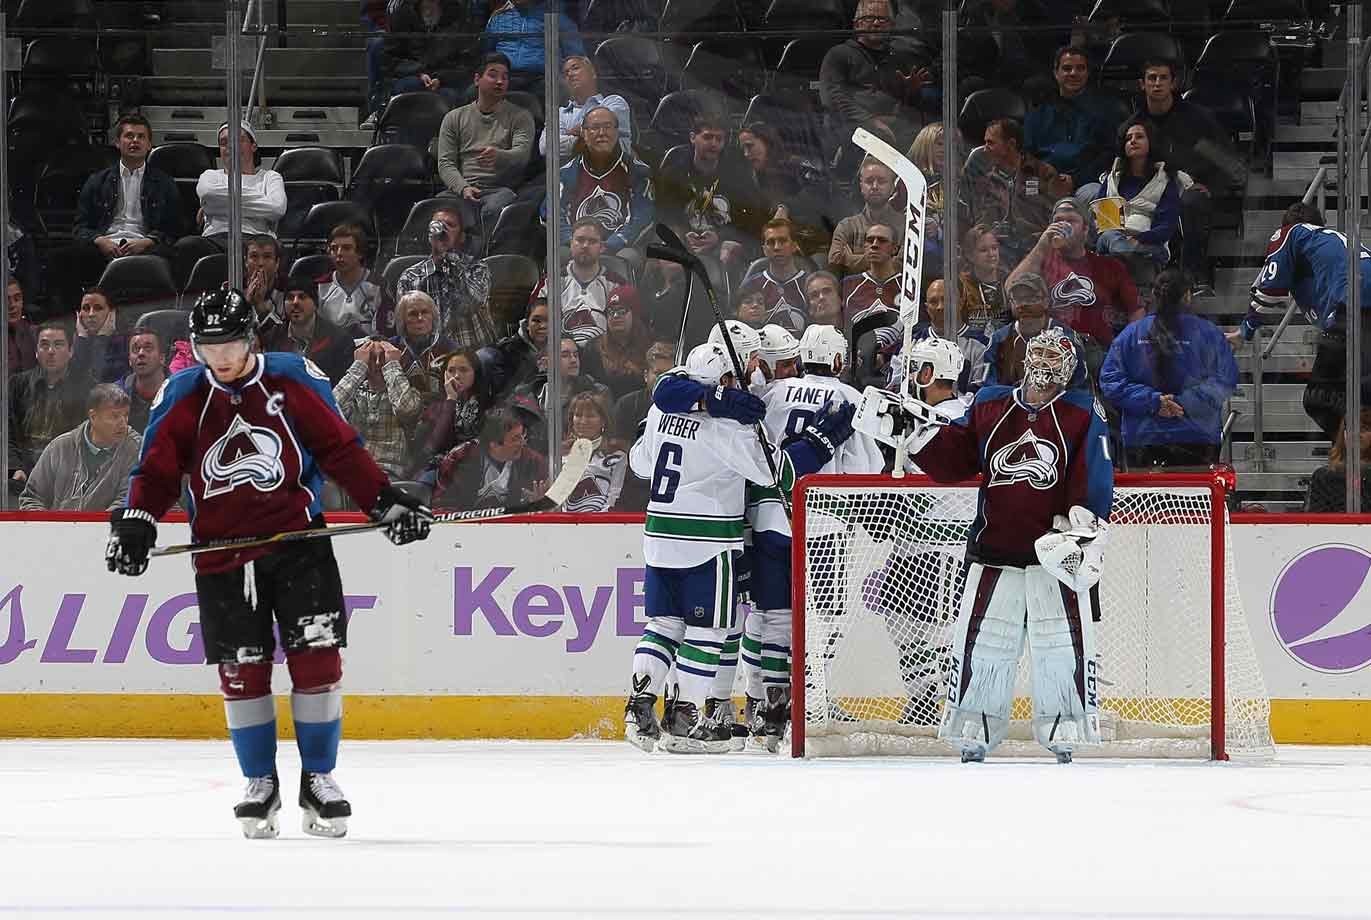 One of those nights: Avalanche netminder Semyon Varlamov and winger Gabriel Landeskog have that hangdog look—as do their fans at Denver's Pepsi Center—while the Canucks celebrate yet another tally on the way to their 5-2 rout on November 4, 2014.